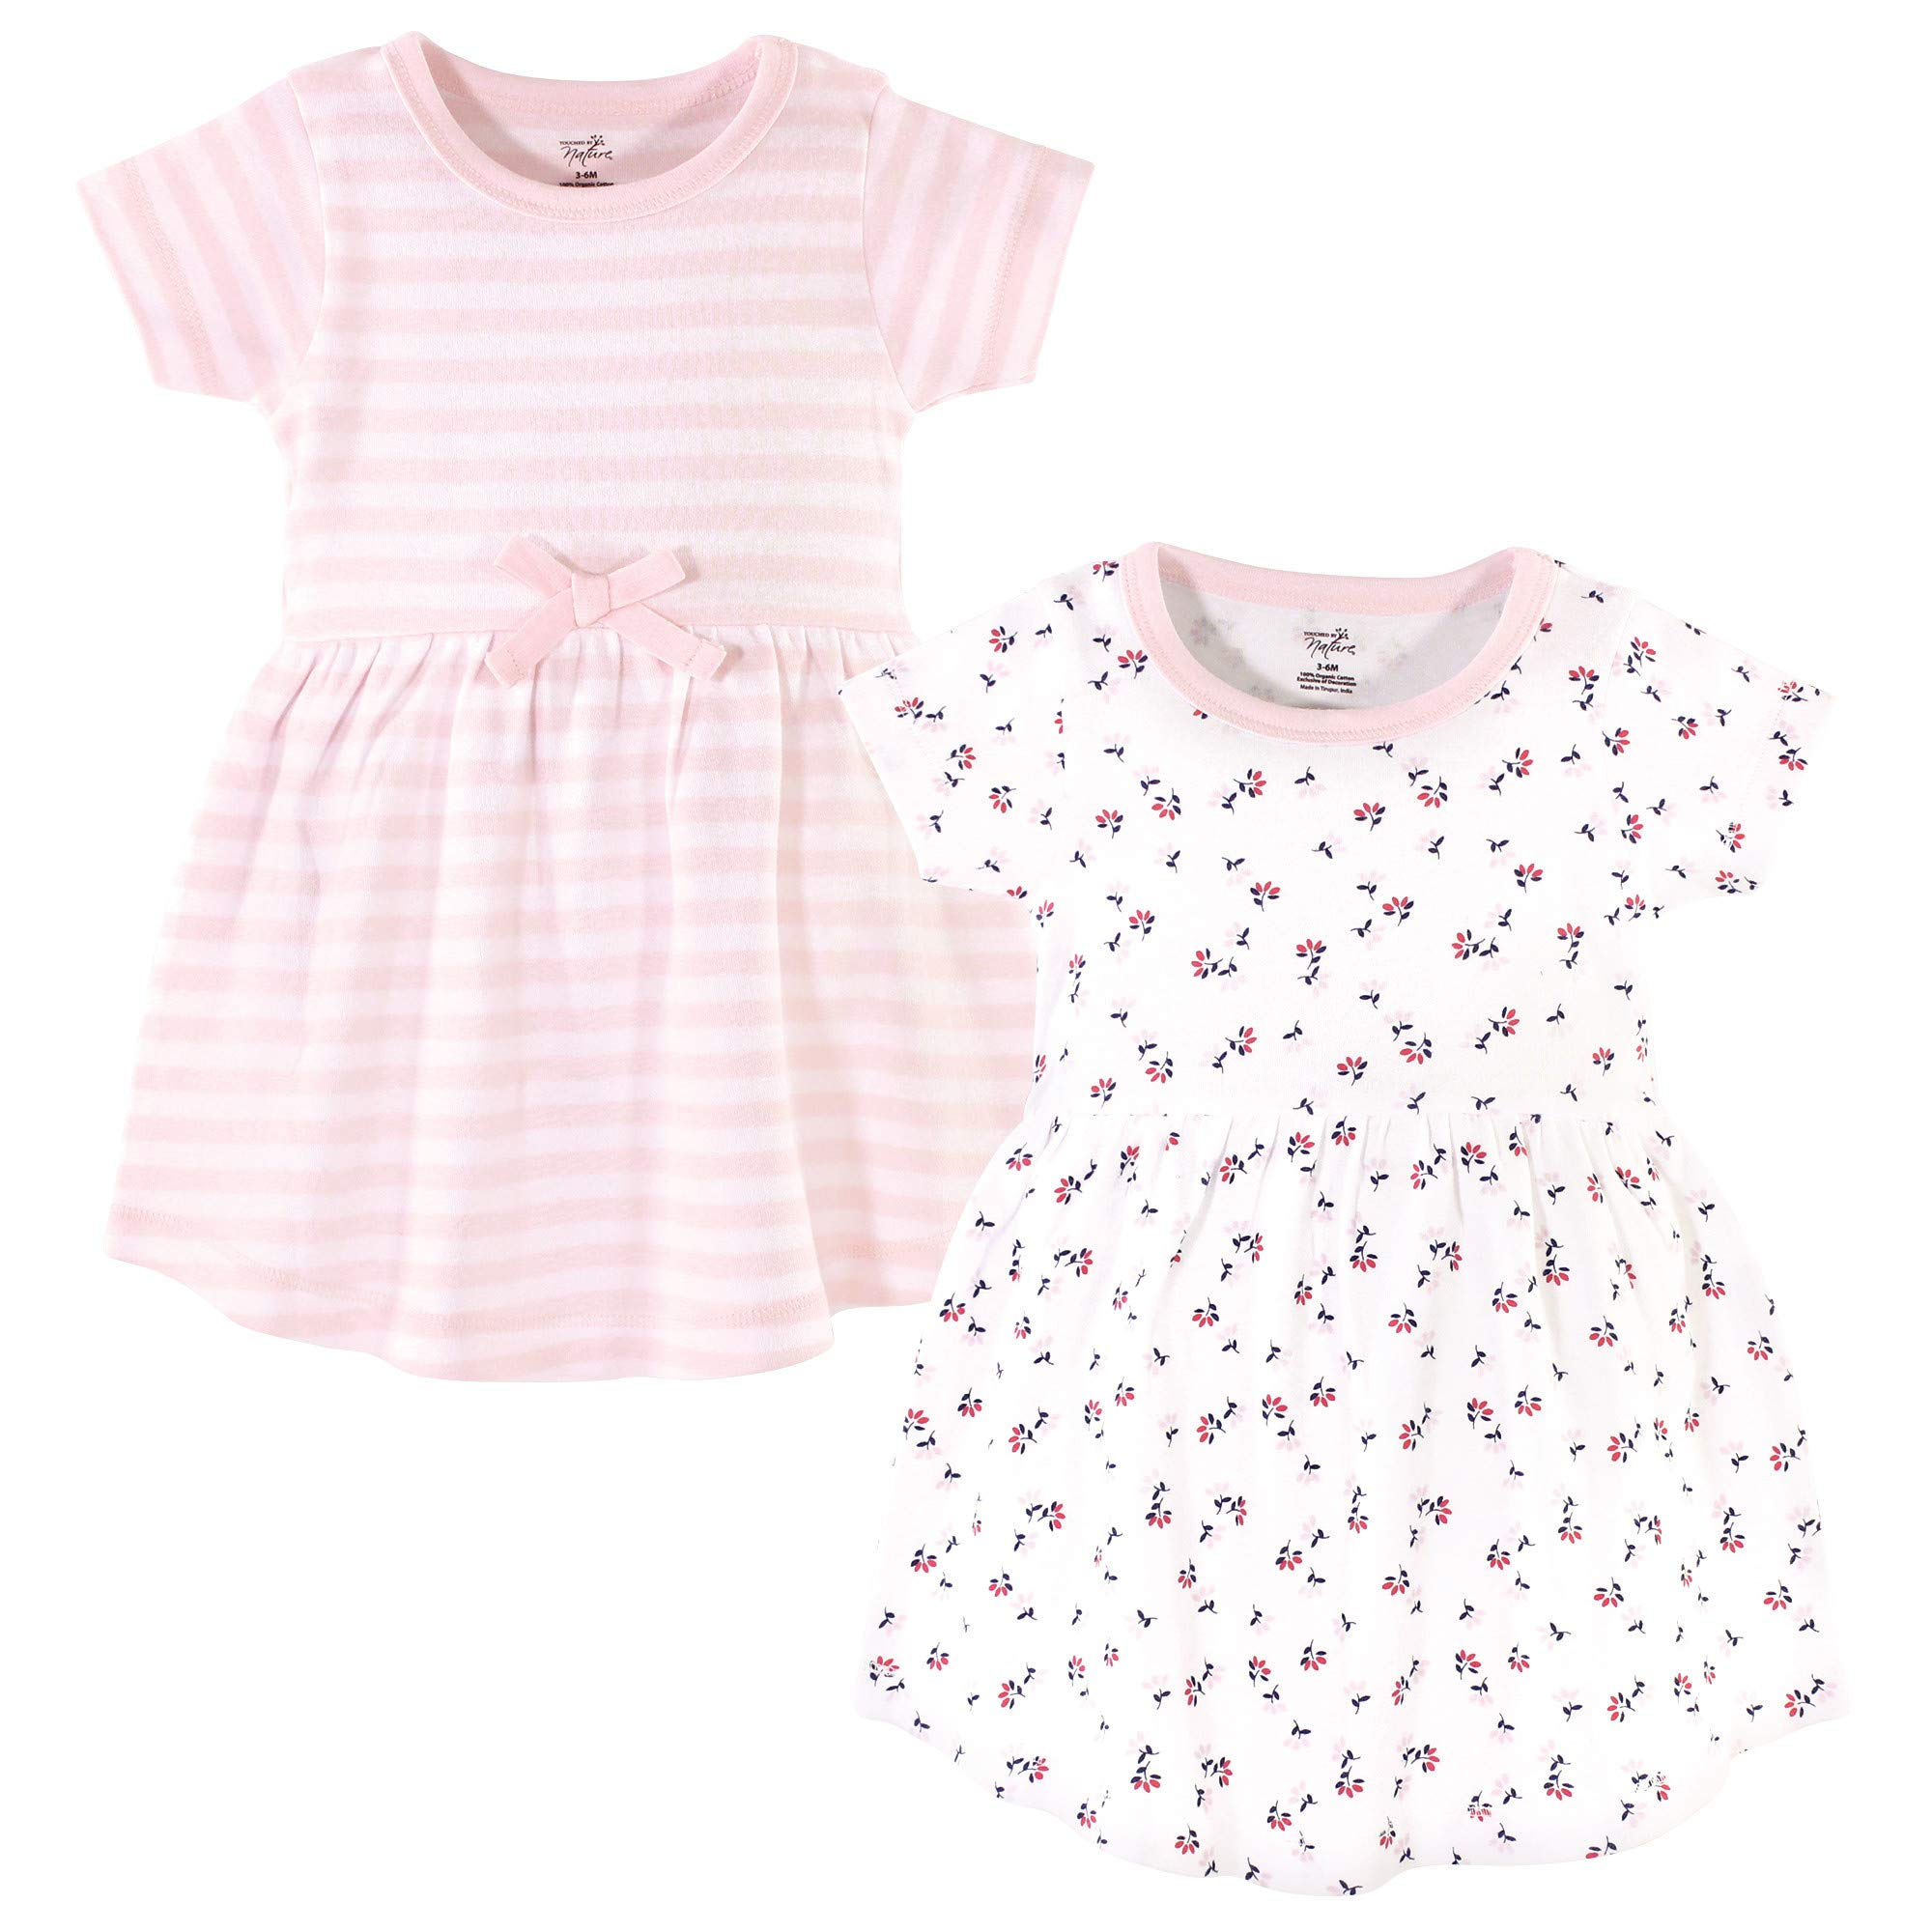 Touched by Nature Baby Girls Organic Cotton Dresses, Tiny Flowers Short Sleeve 2-Pack, 3-6 Months (6M) by Touched by Nature